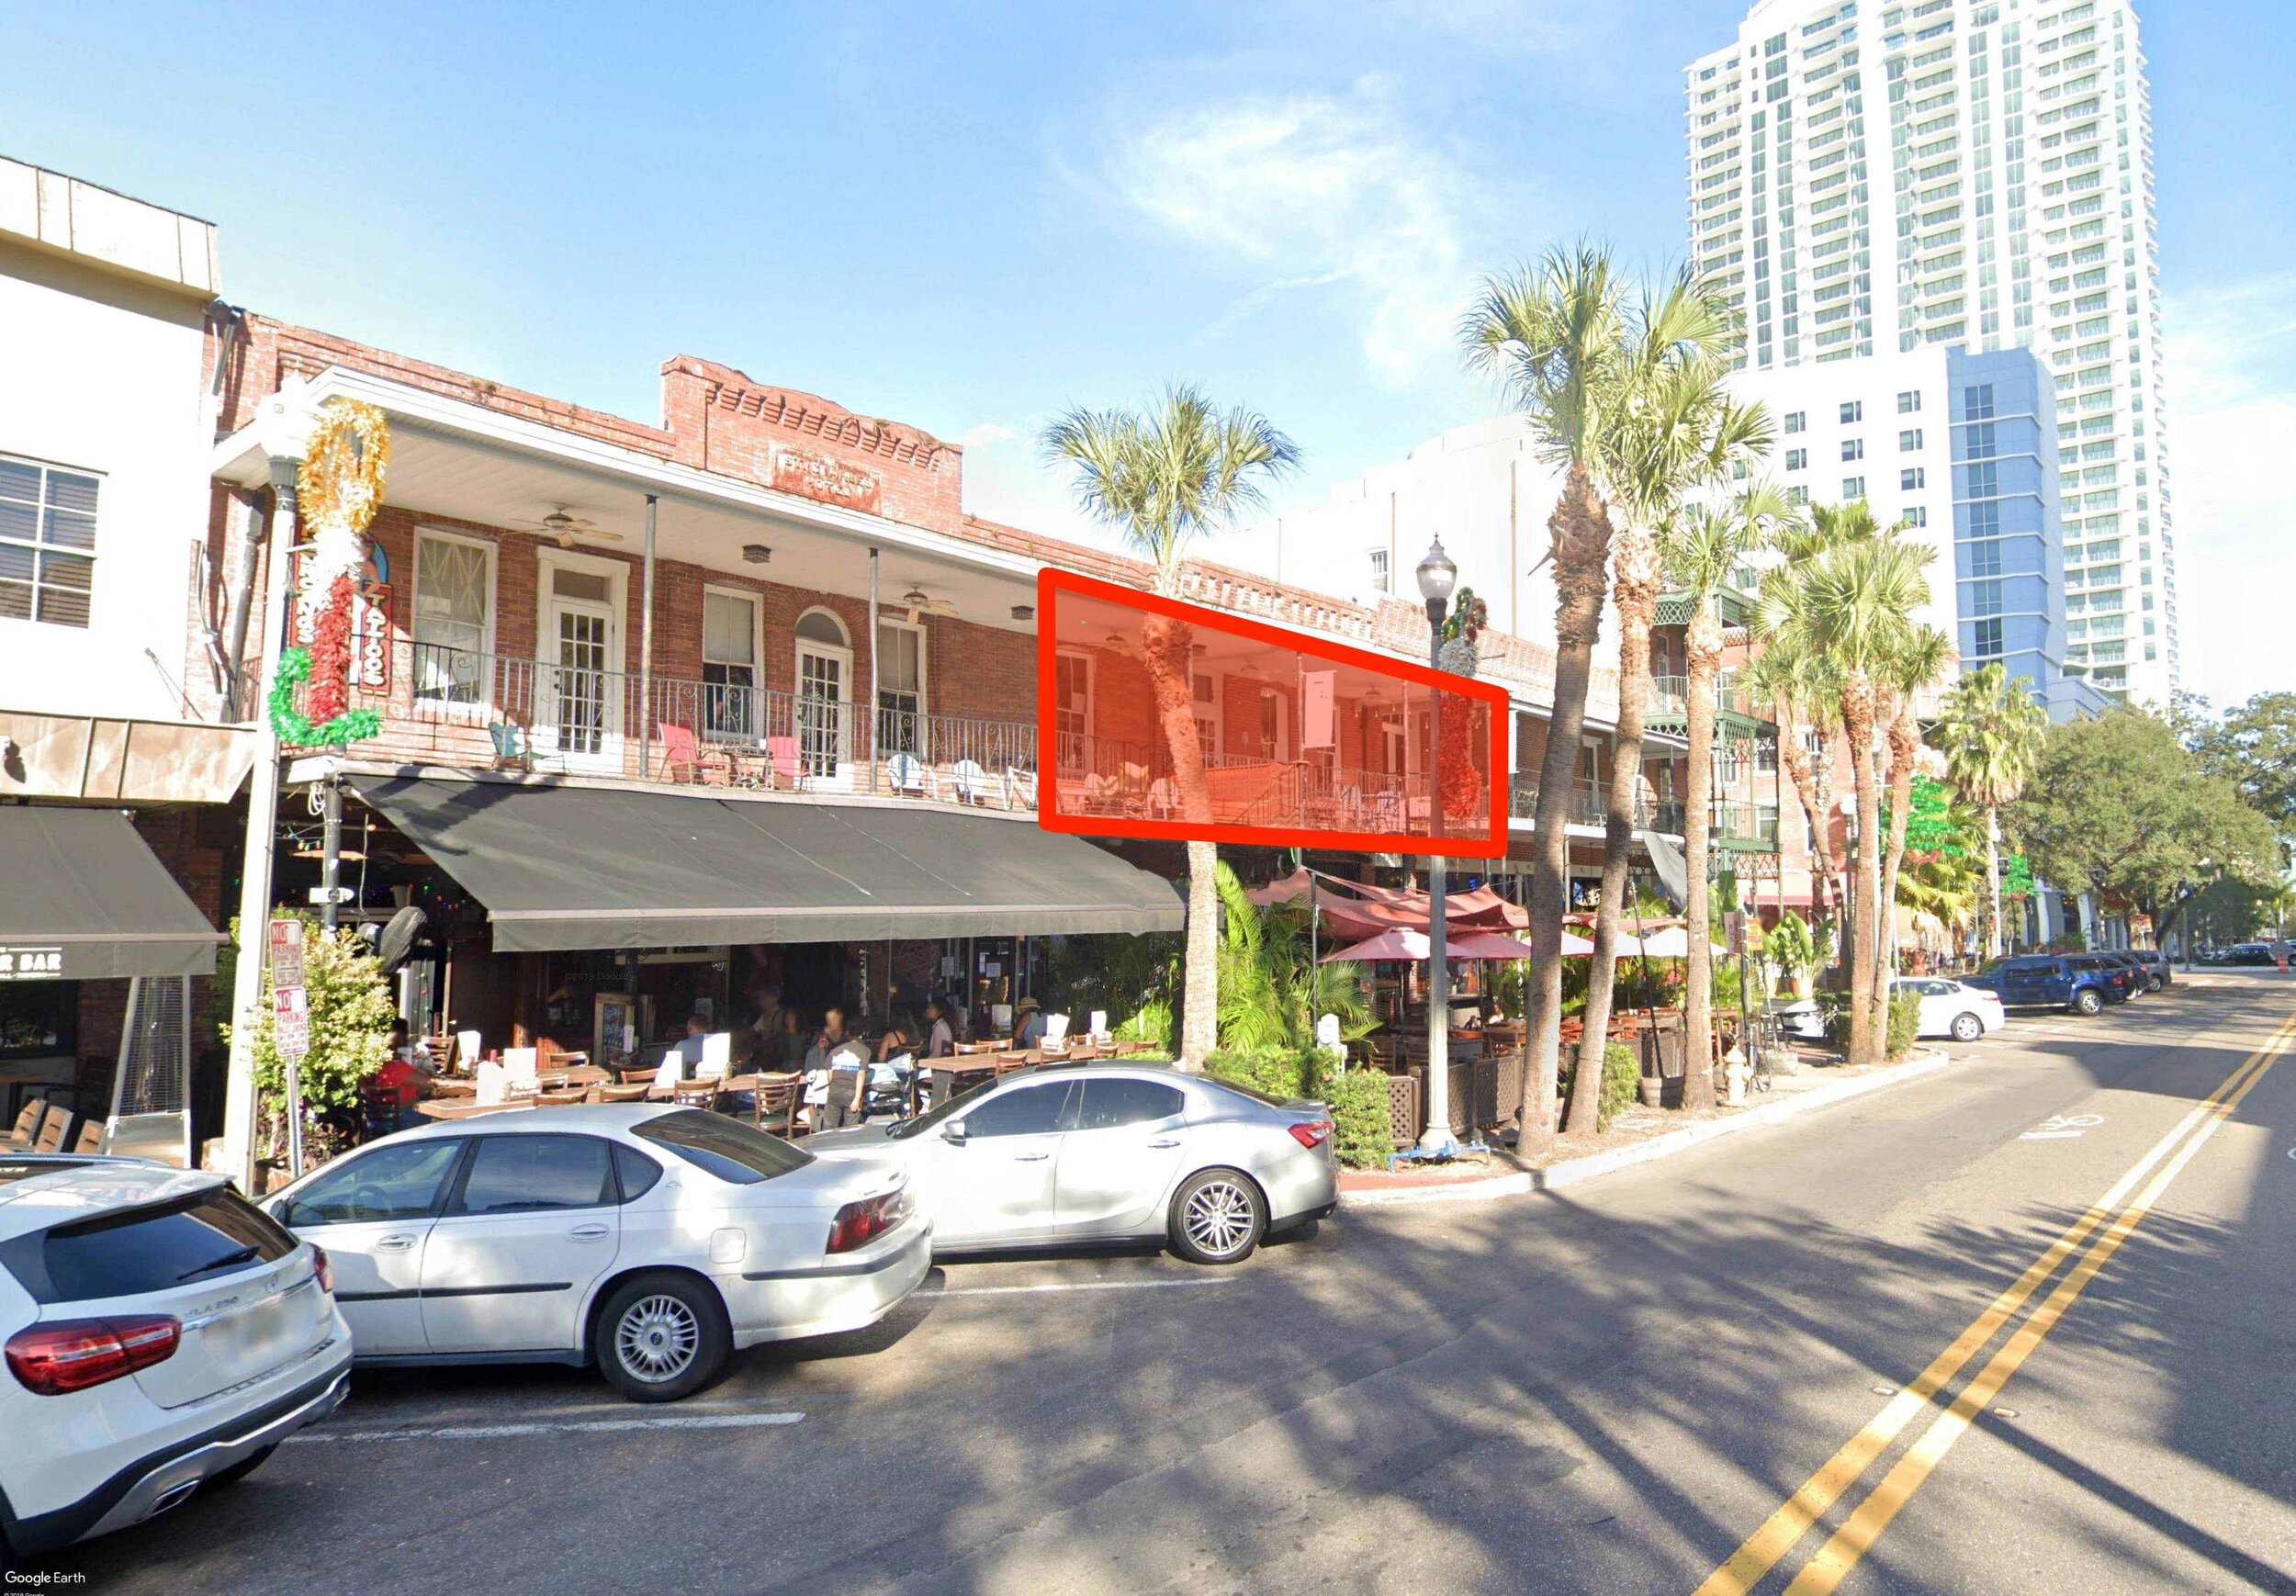 Sauvignon: Wine Locker & American Trattoria will be located at 241 Central Avenue on the second floor of the Jannus Block in Downtown St Petersburg, FL